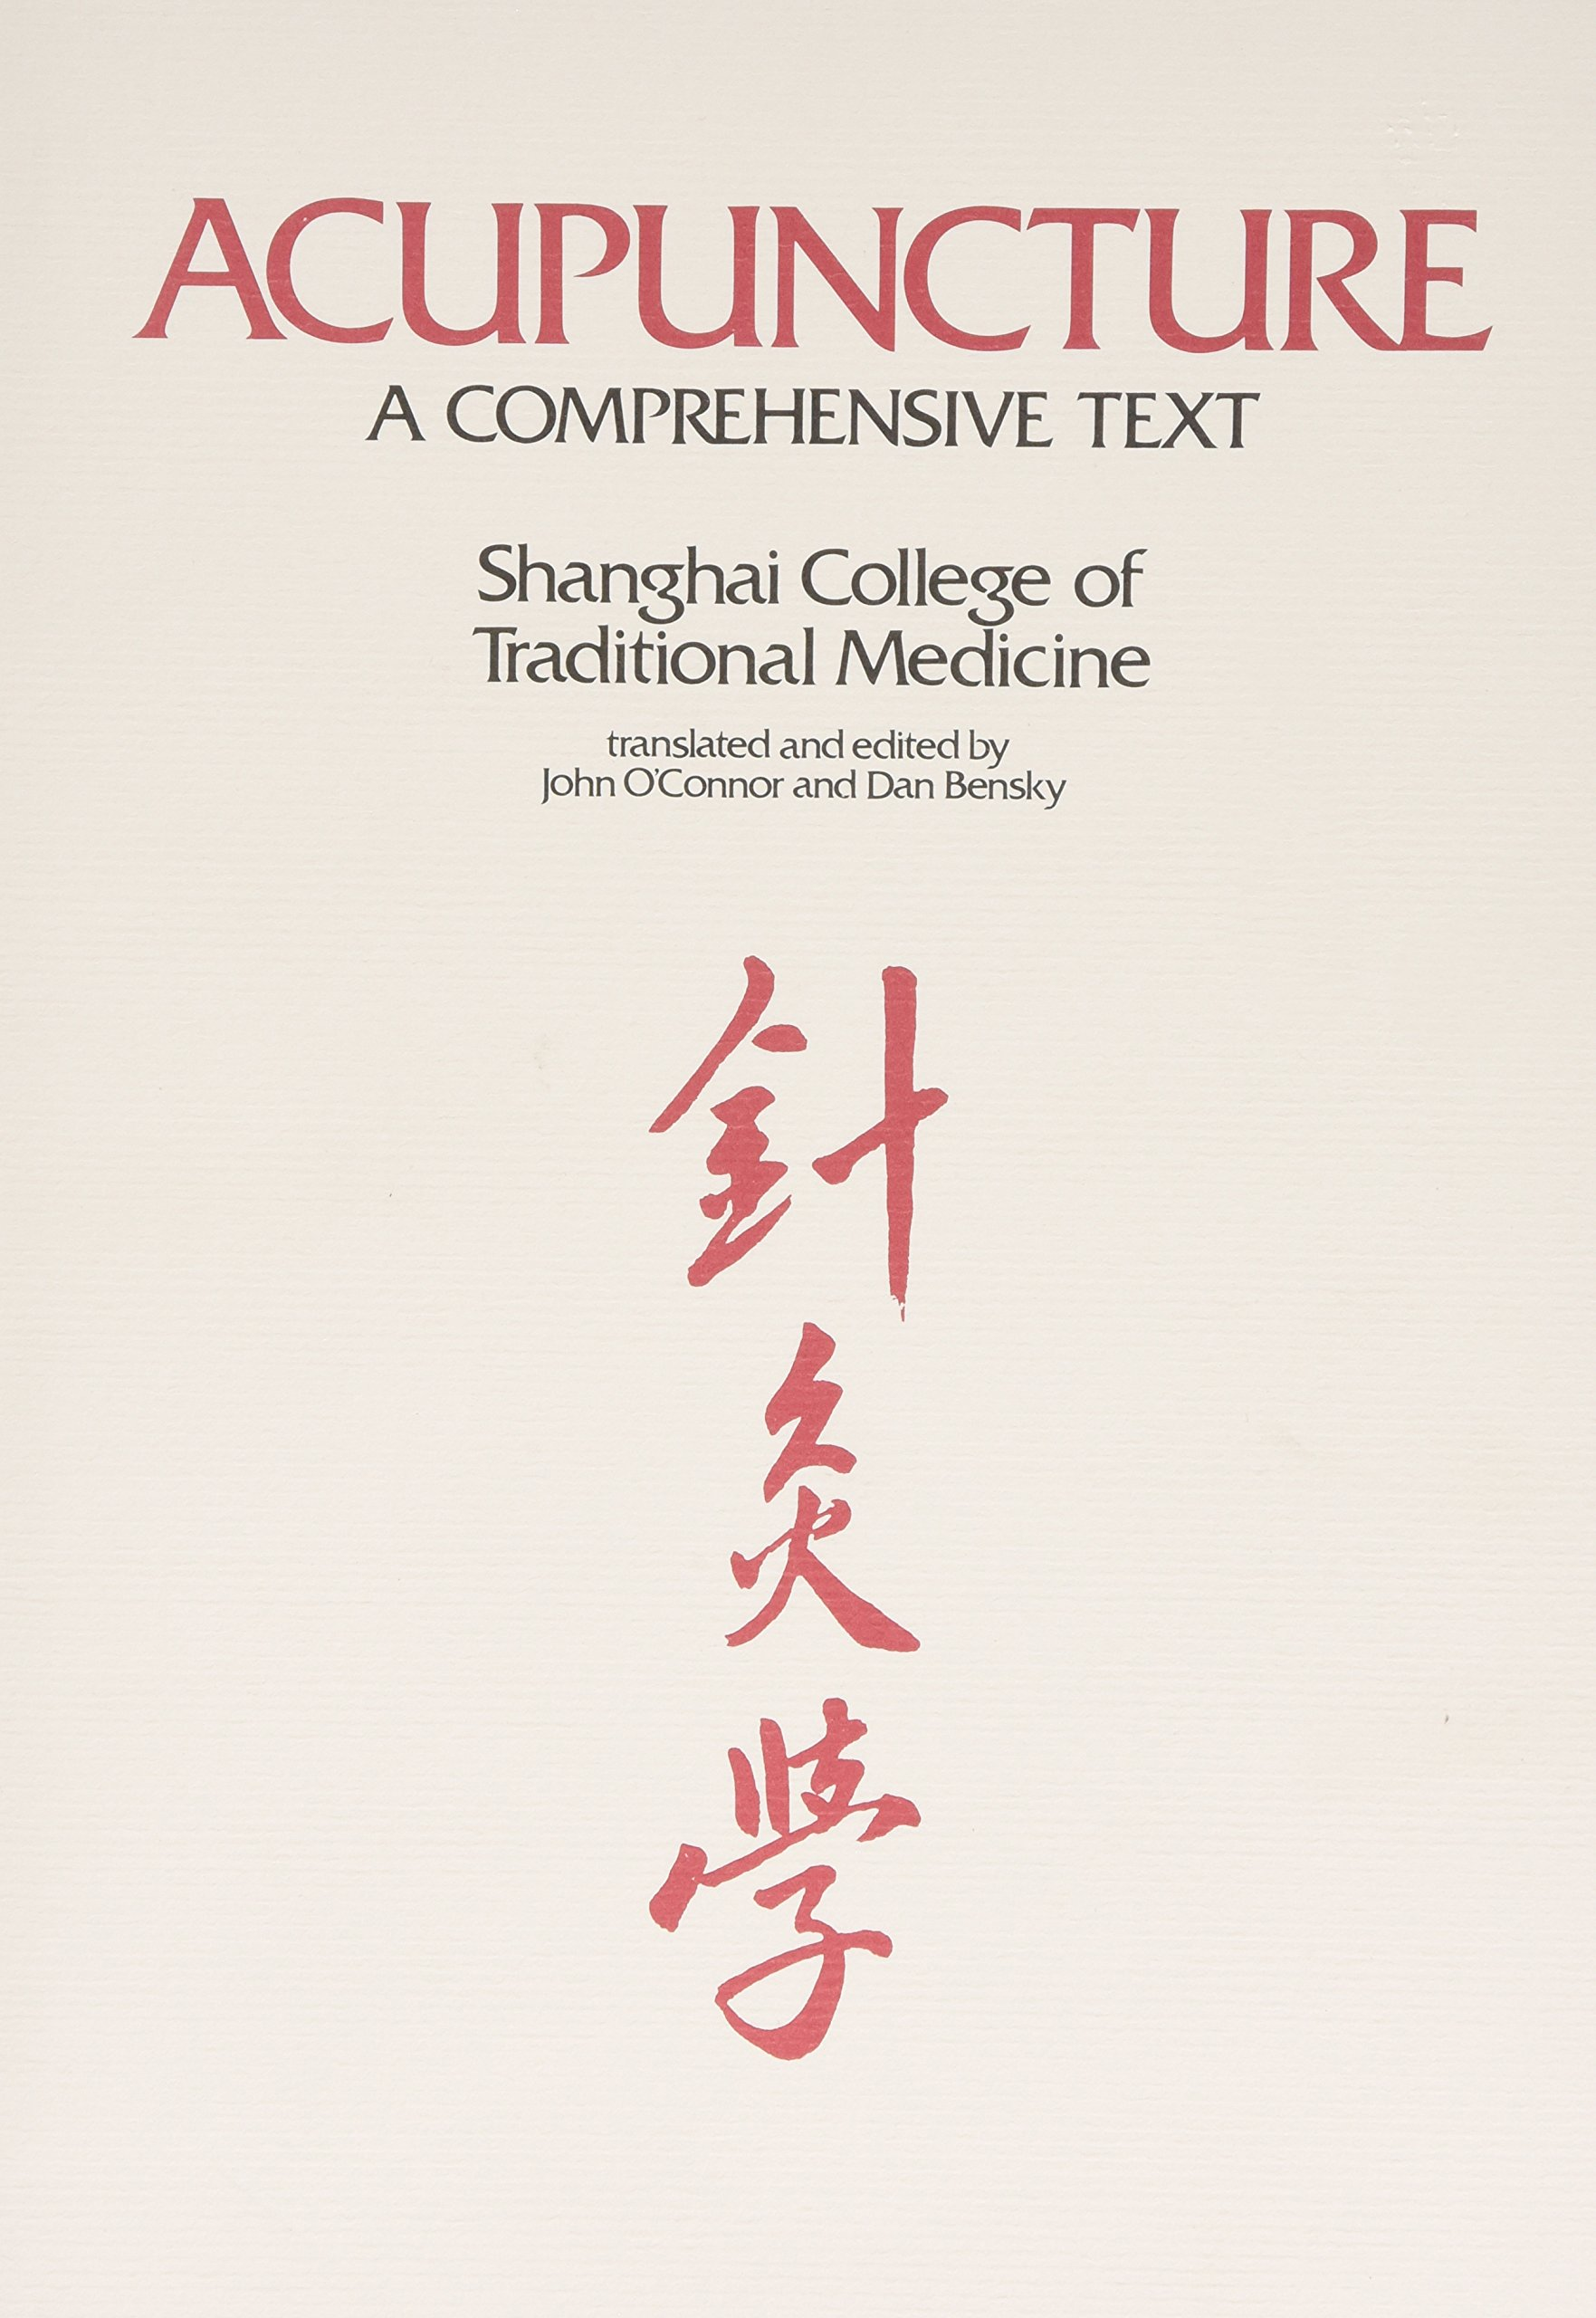 Acupuncture: A Comprehensive Text(Shanghai College of Traditional  Medicine): Oconnor: 9780939616008: Books - Amazon.ca